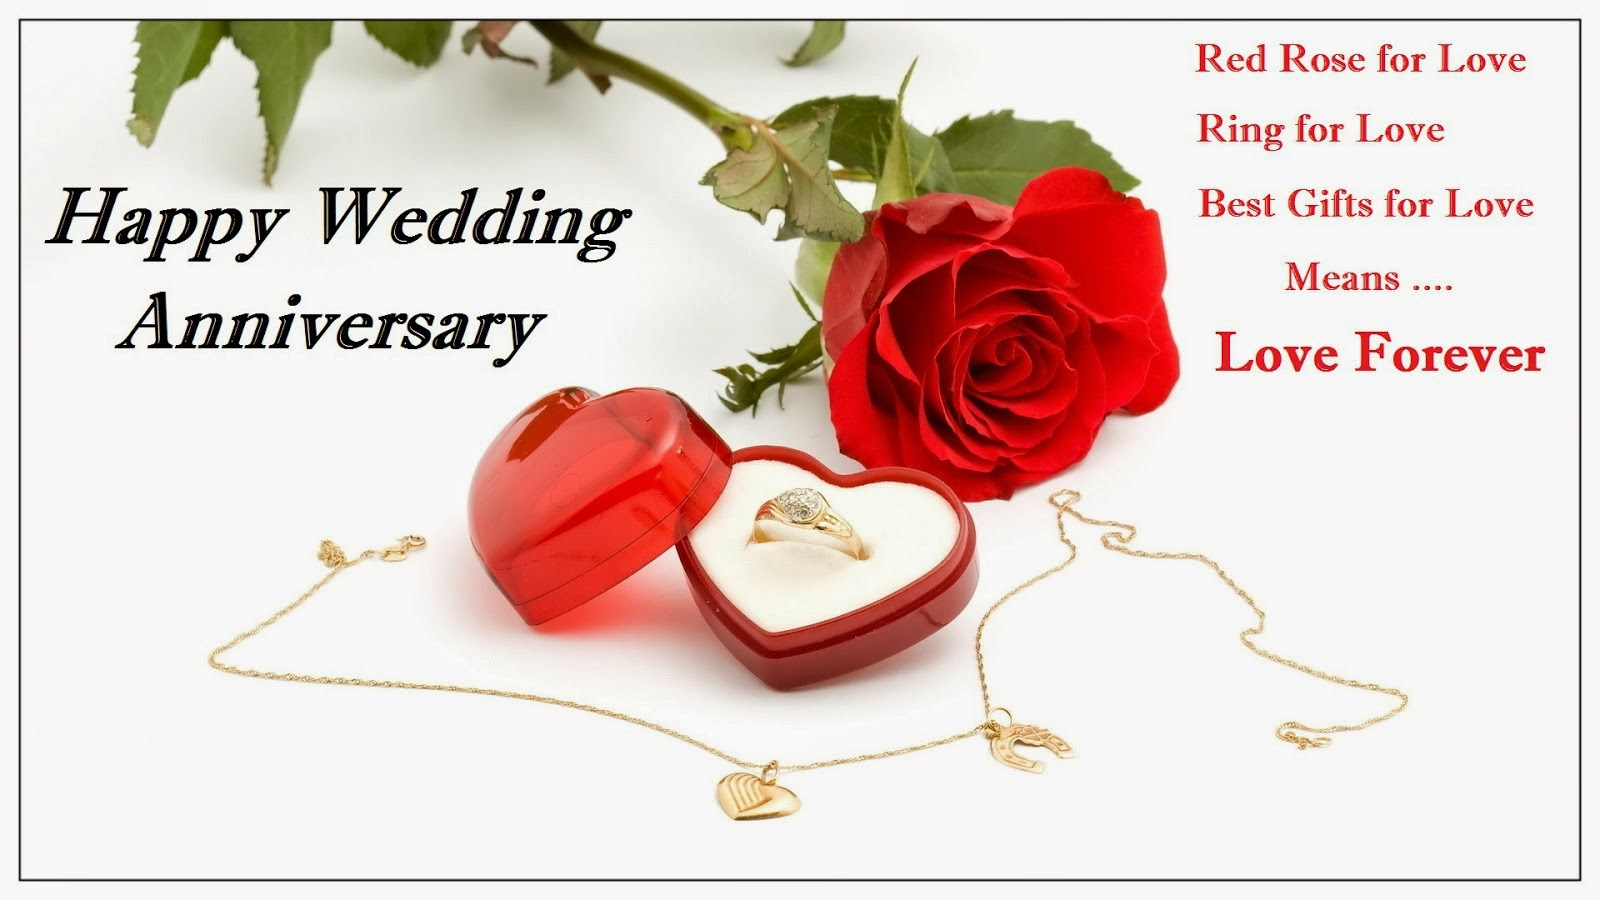 Top 50 beautiful happy wedding anniversary wishes images for Best gift for wedding anniversary